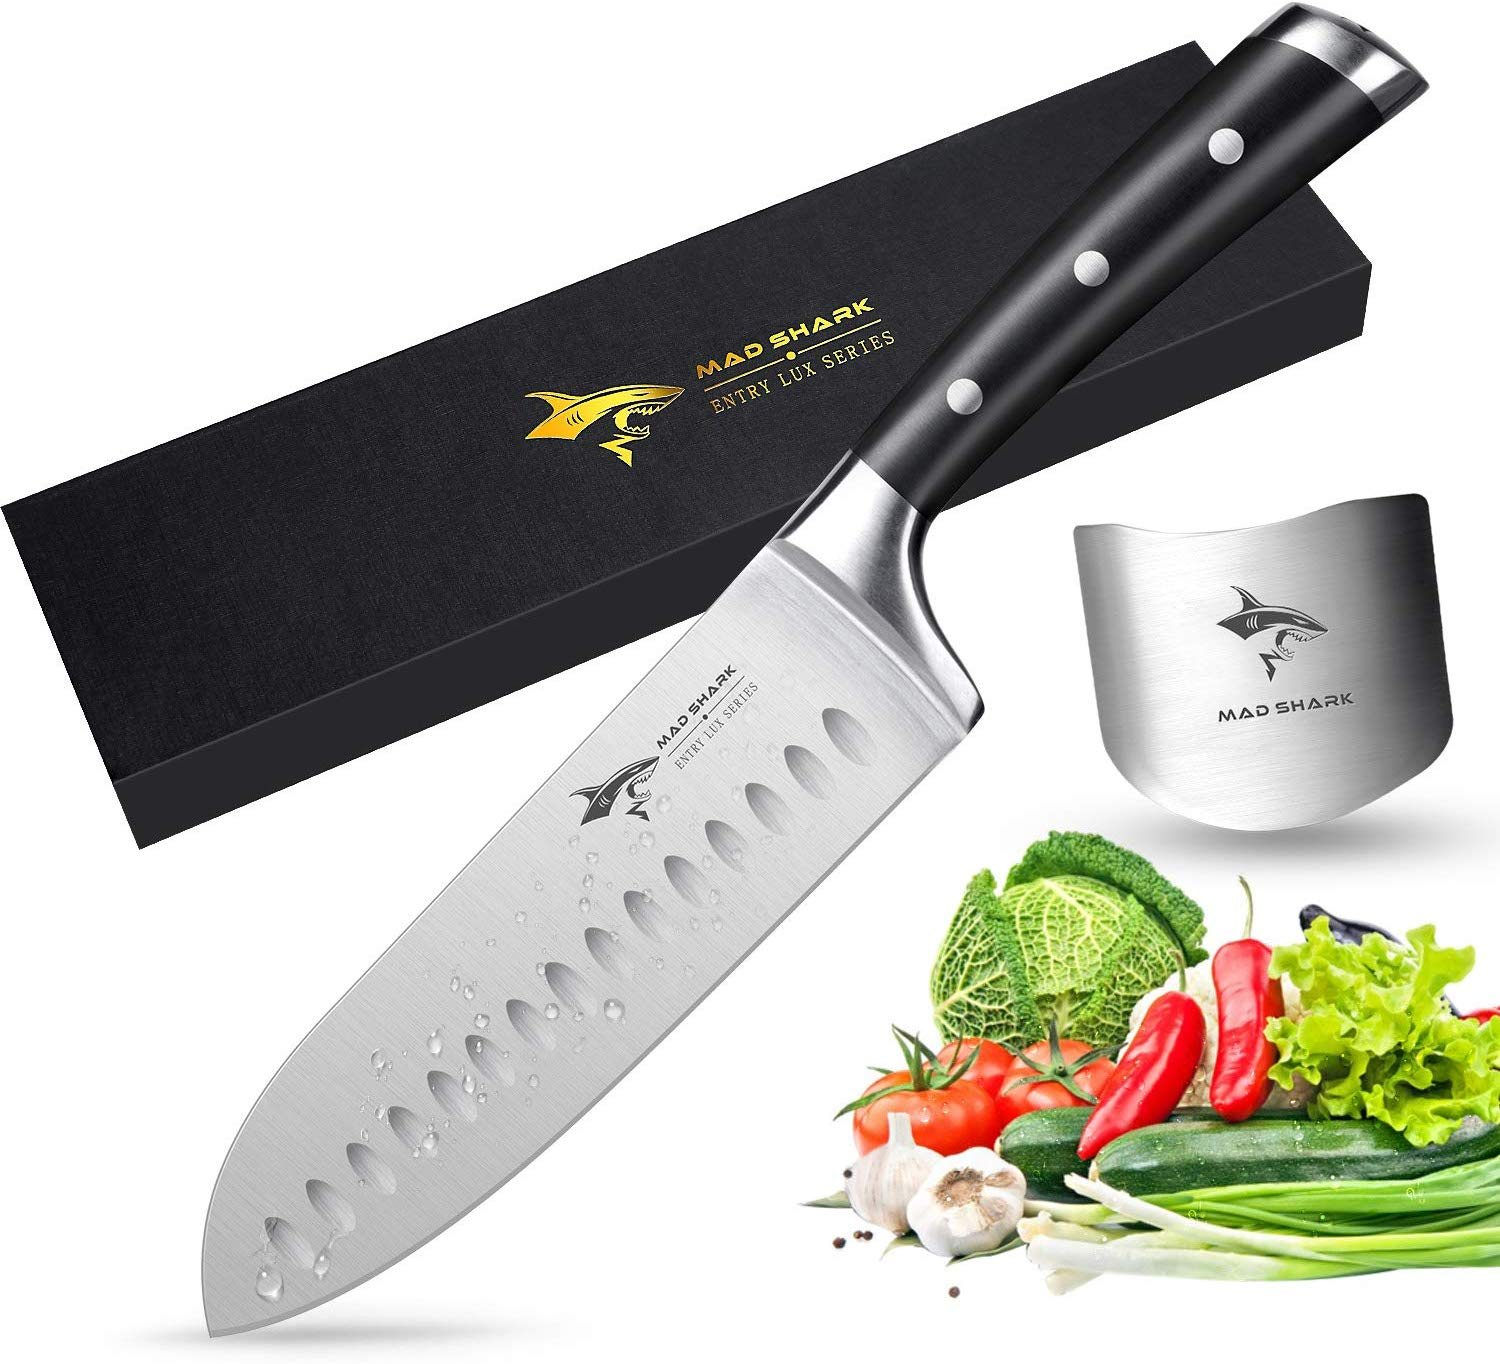 Santoku Knife - MAD SHARK Pro Kitchen Knives 7 Inch Chef's Knives,Best Quality German High Carbon Stainless Steel Knife with Ergonomic Handle,Ultra Sharp,Best Choice for Home Kitchen and Restaurant